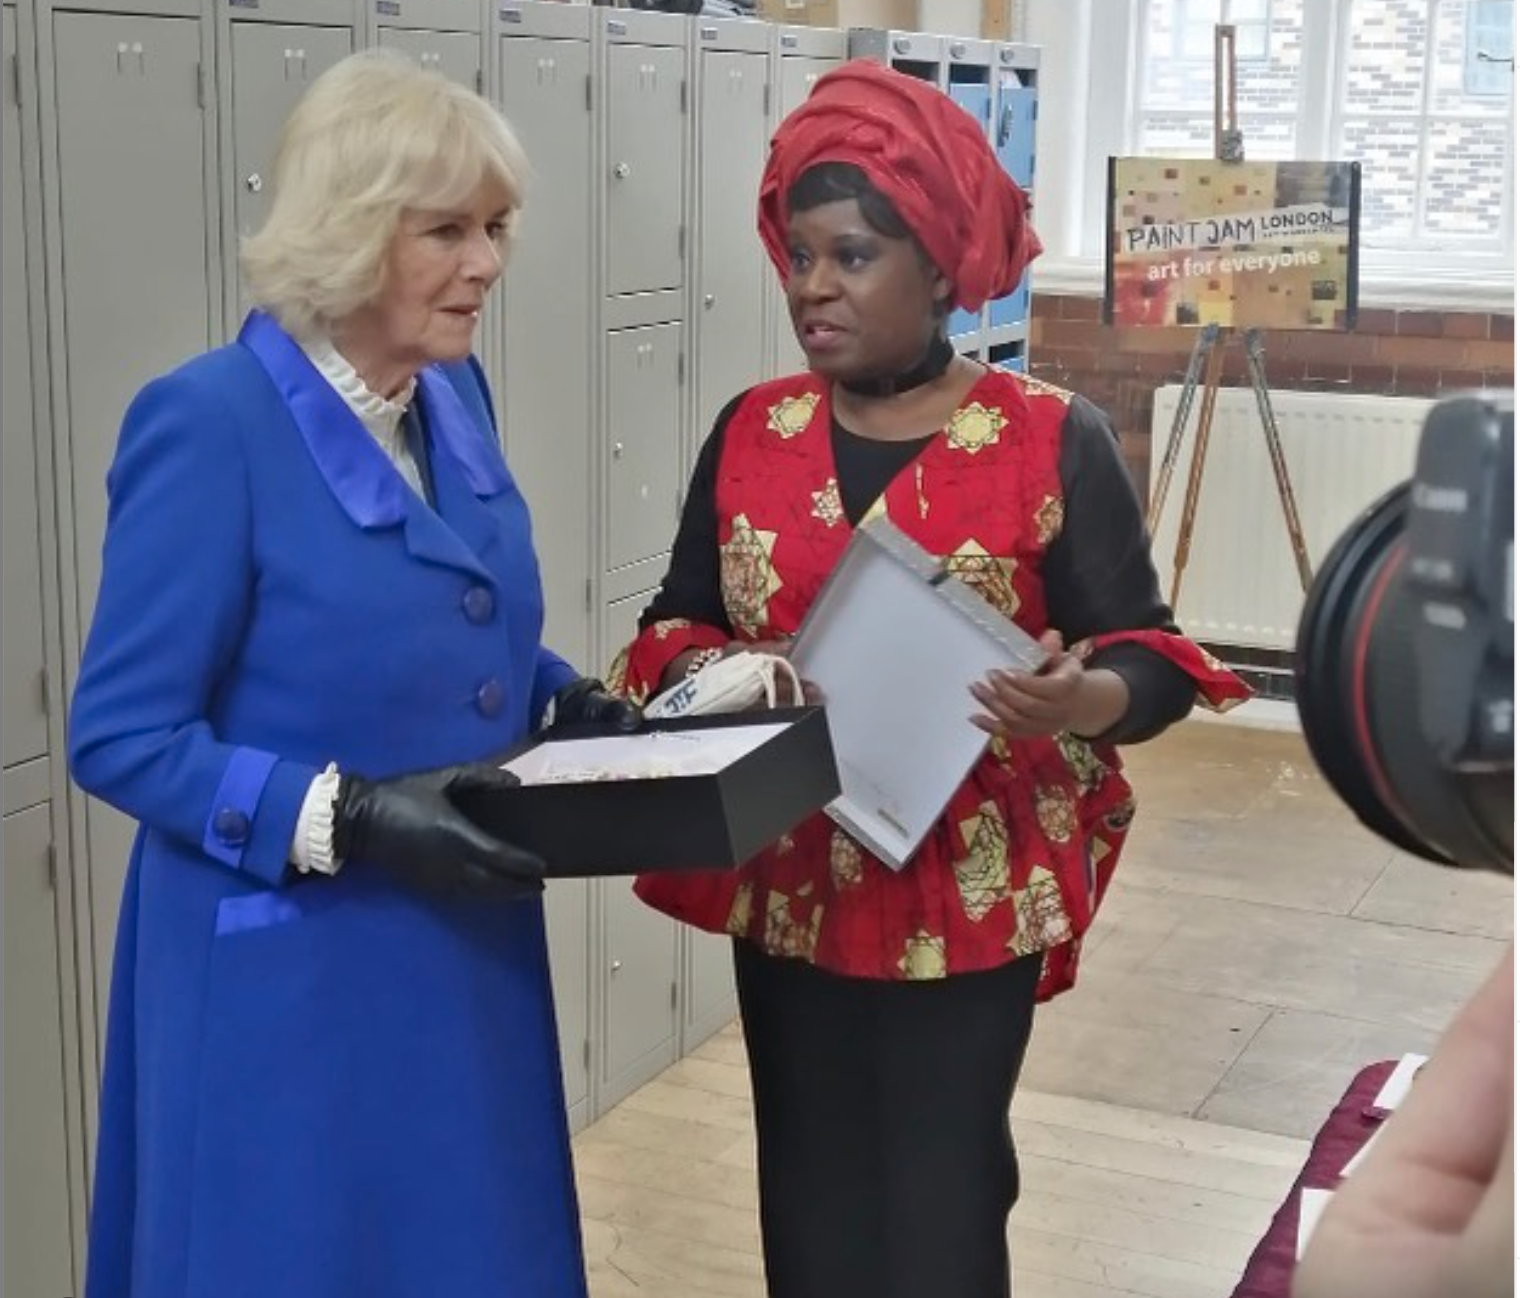 Above: Dayo Williams, founder of handmade card company, Dayo's Cards explaining to the Duchess of Cornwall earlier this year about her business.